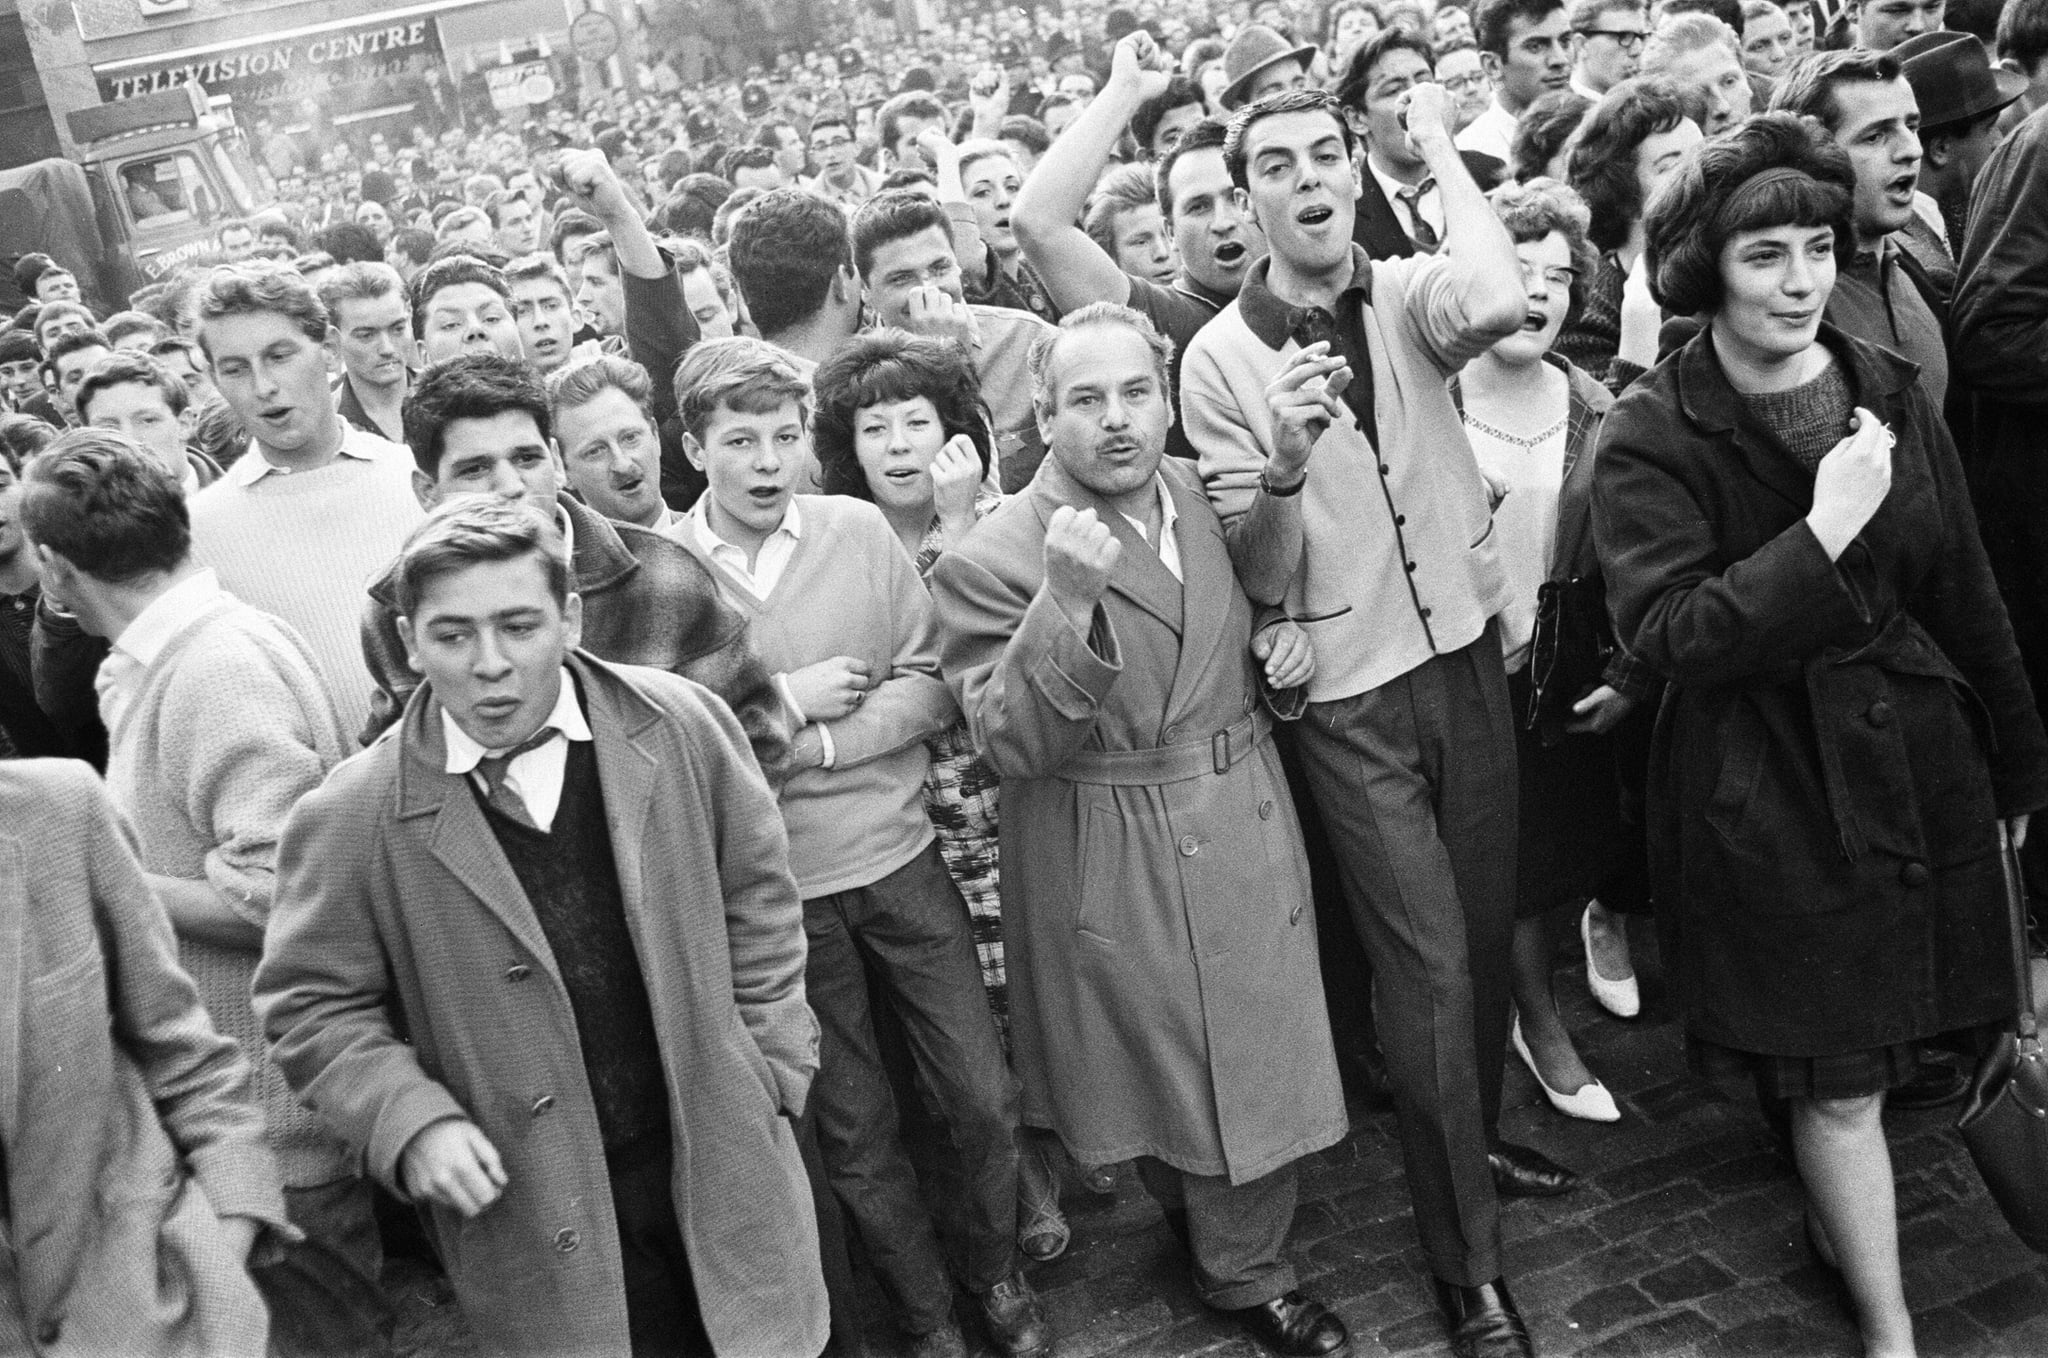 Ridley Road, London, Tuesday 31st July 1962: A large crowd gathers in the East End to disrupt a rally by former fascist leader Sir Oswald Mosley and members of his anti-Semitic Blackshirt group who had planned a rally in London's East End. Mosley and his group were assaulted and punched to the ground as soon as his meeting opened at Ridley Road, Dalston. Police closed the meeting within the first three minutes and made 54 arrests, one of which was Sir Oswald's son Max. (Photo by Bob Powell/Don Smith/Mirrorpix/Getty Images)